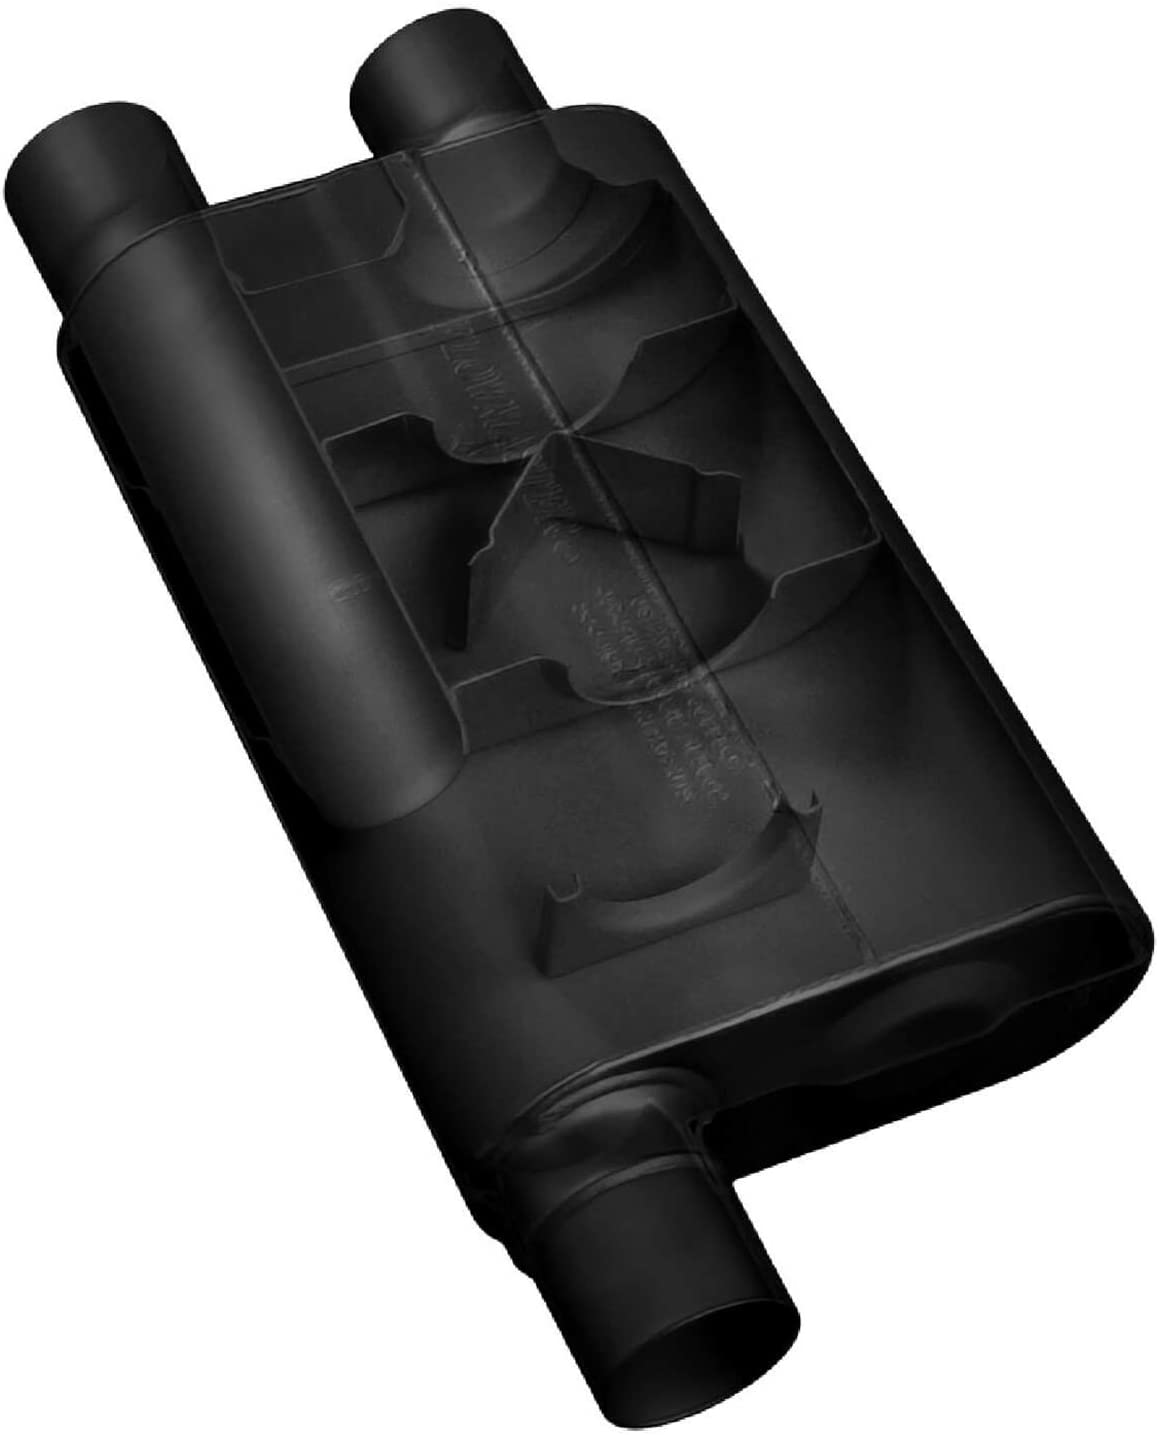 Flowmaster 43083 3 In/Dual 2.5 Out 80 Series Muffler